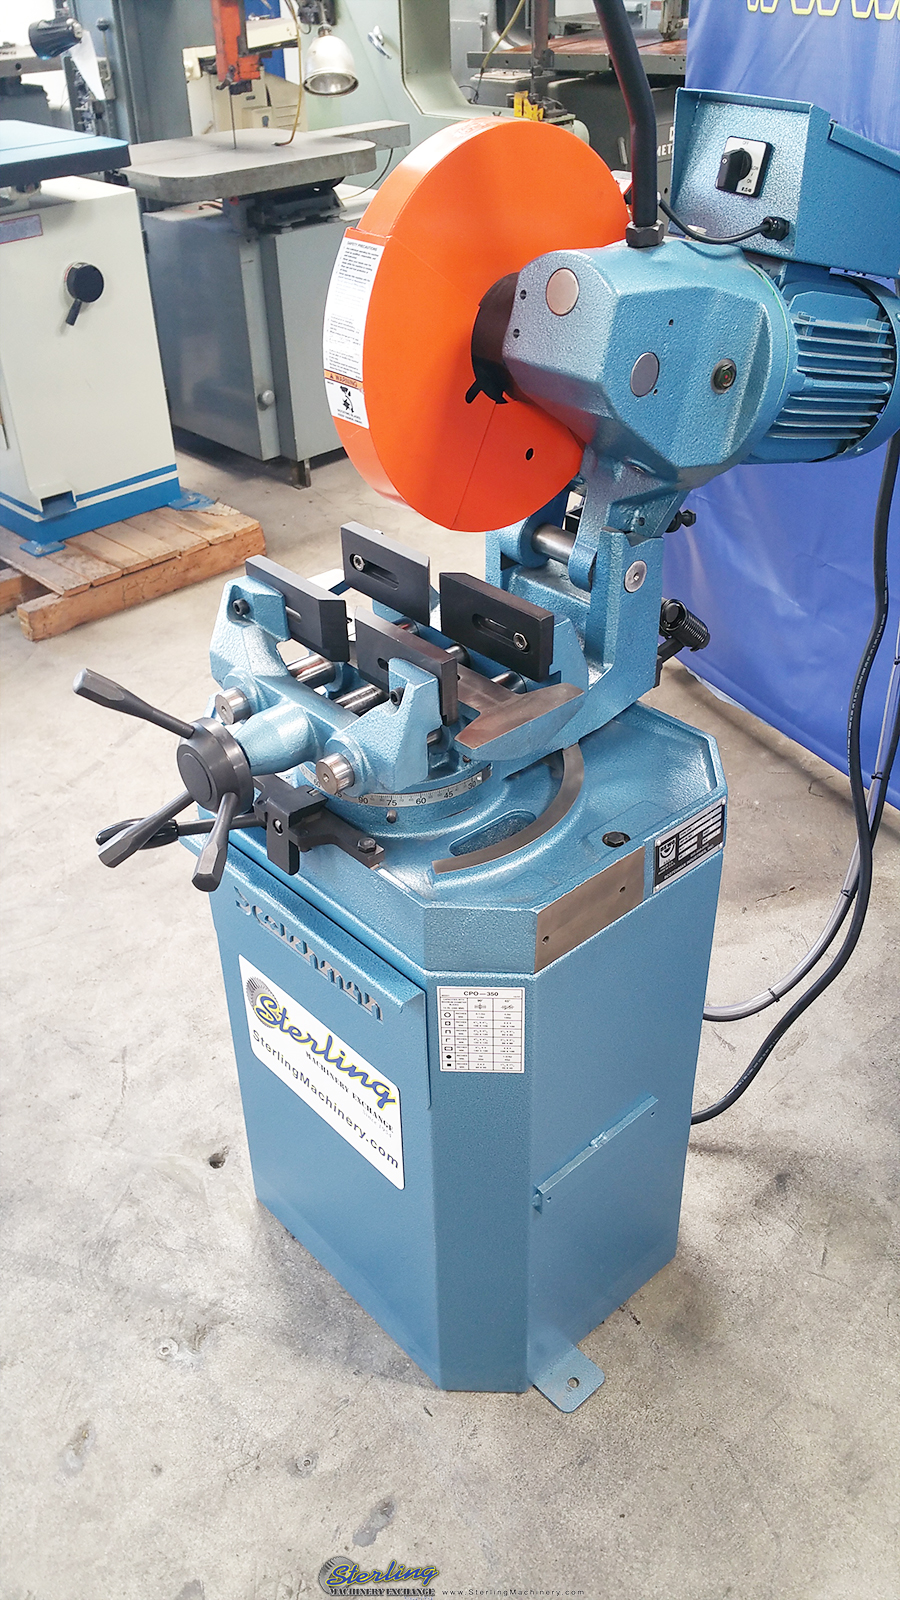 new scotchman (low turn, manual vise and manual down feed) circular cold saw (for cutting steel, stainless, aluminum, brass, copper, plastics) CPO 350 LT